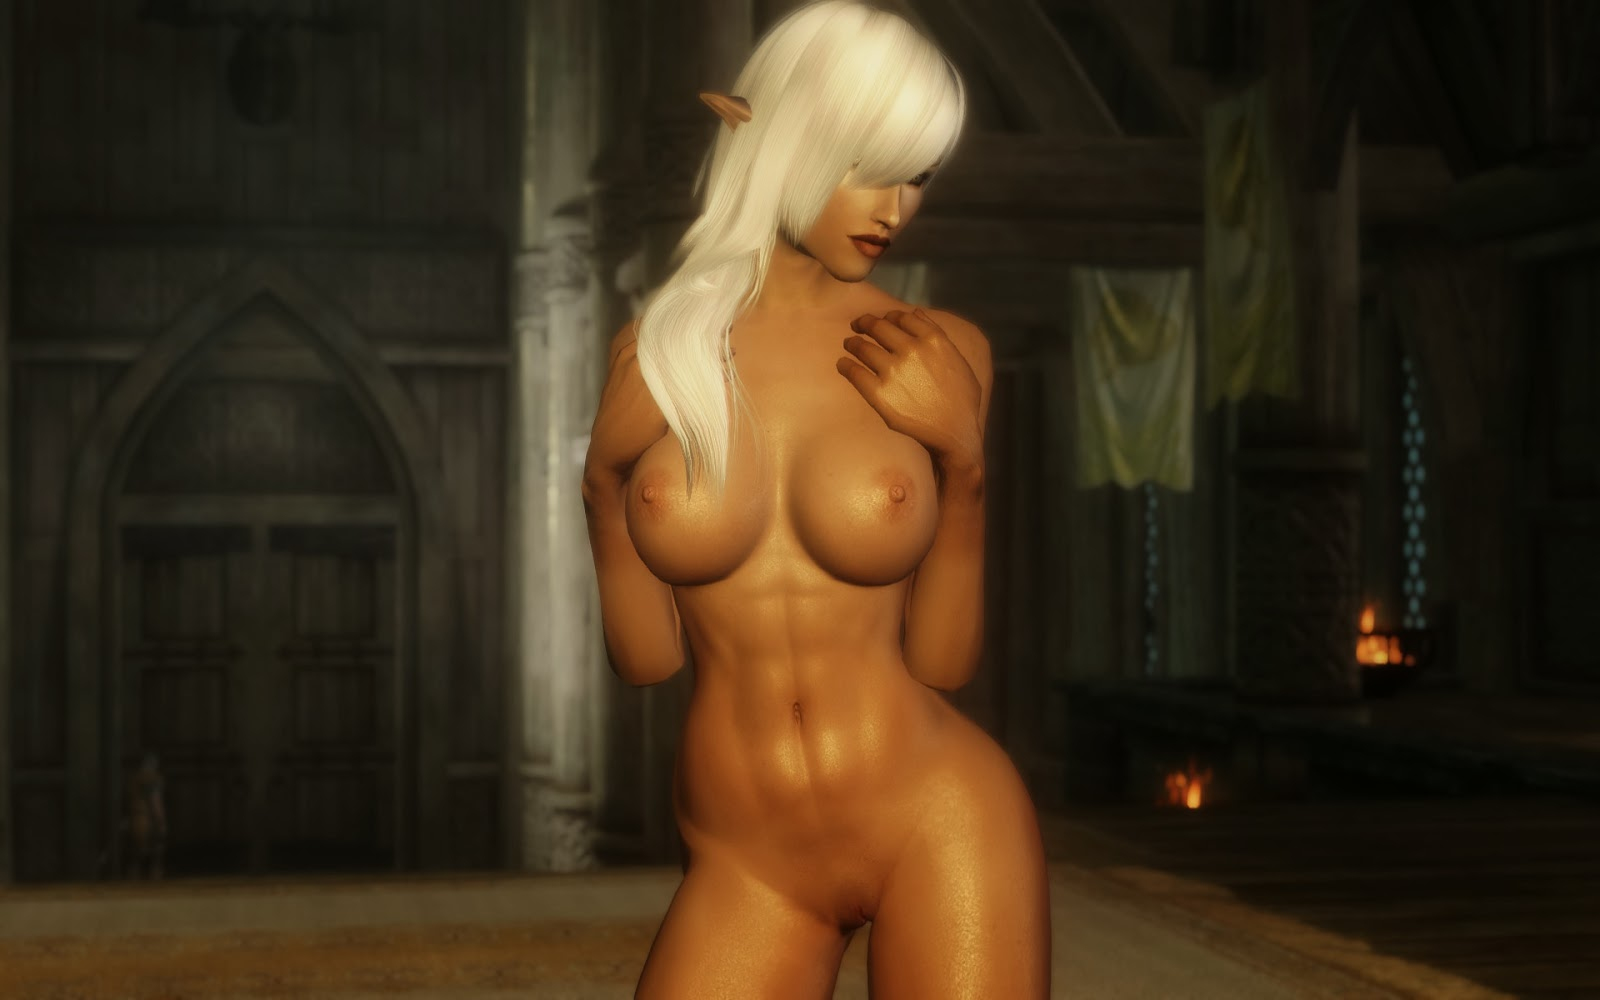 Gta 5 nudity uncensored naked picture